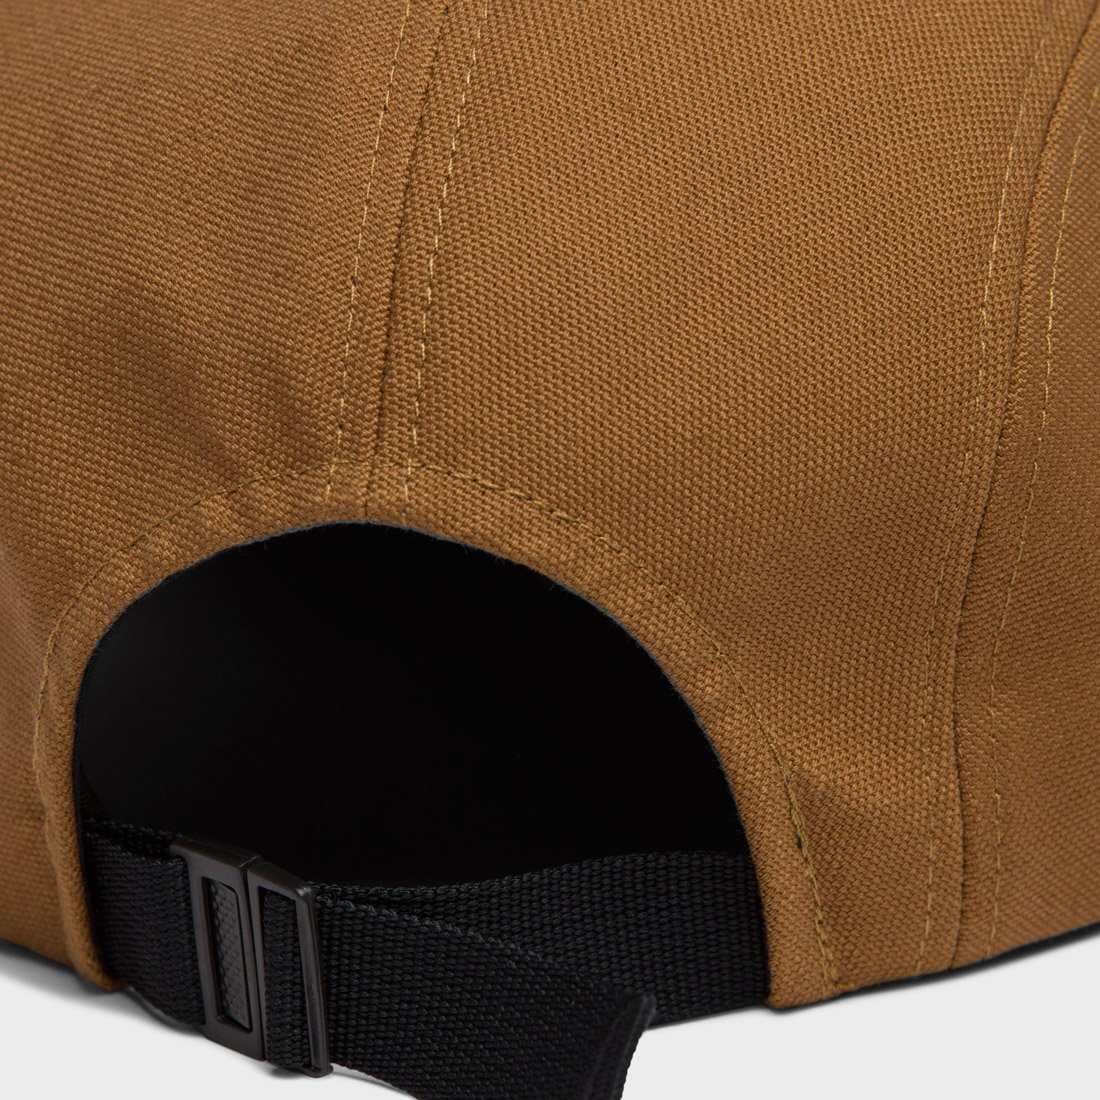 c0a5e32bc99 ... product: Carhartt WIP Backley Cap Hamilton Brown